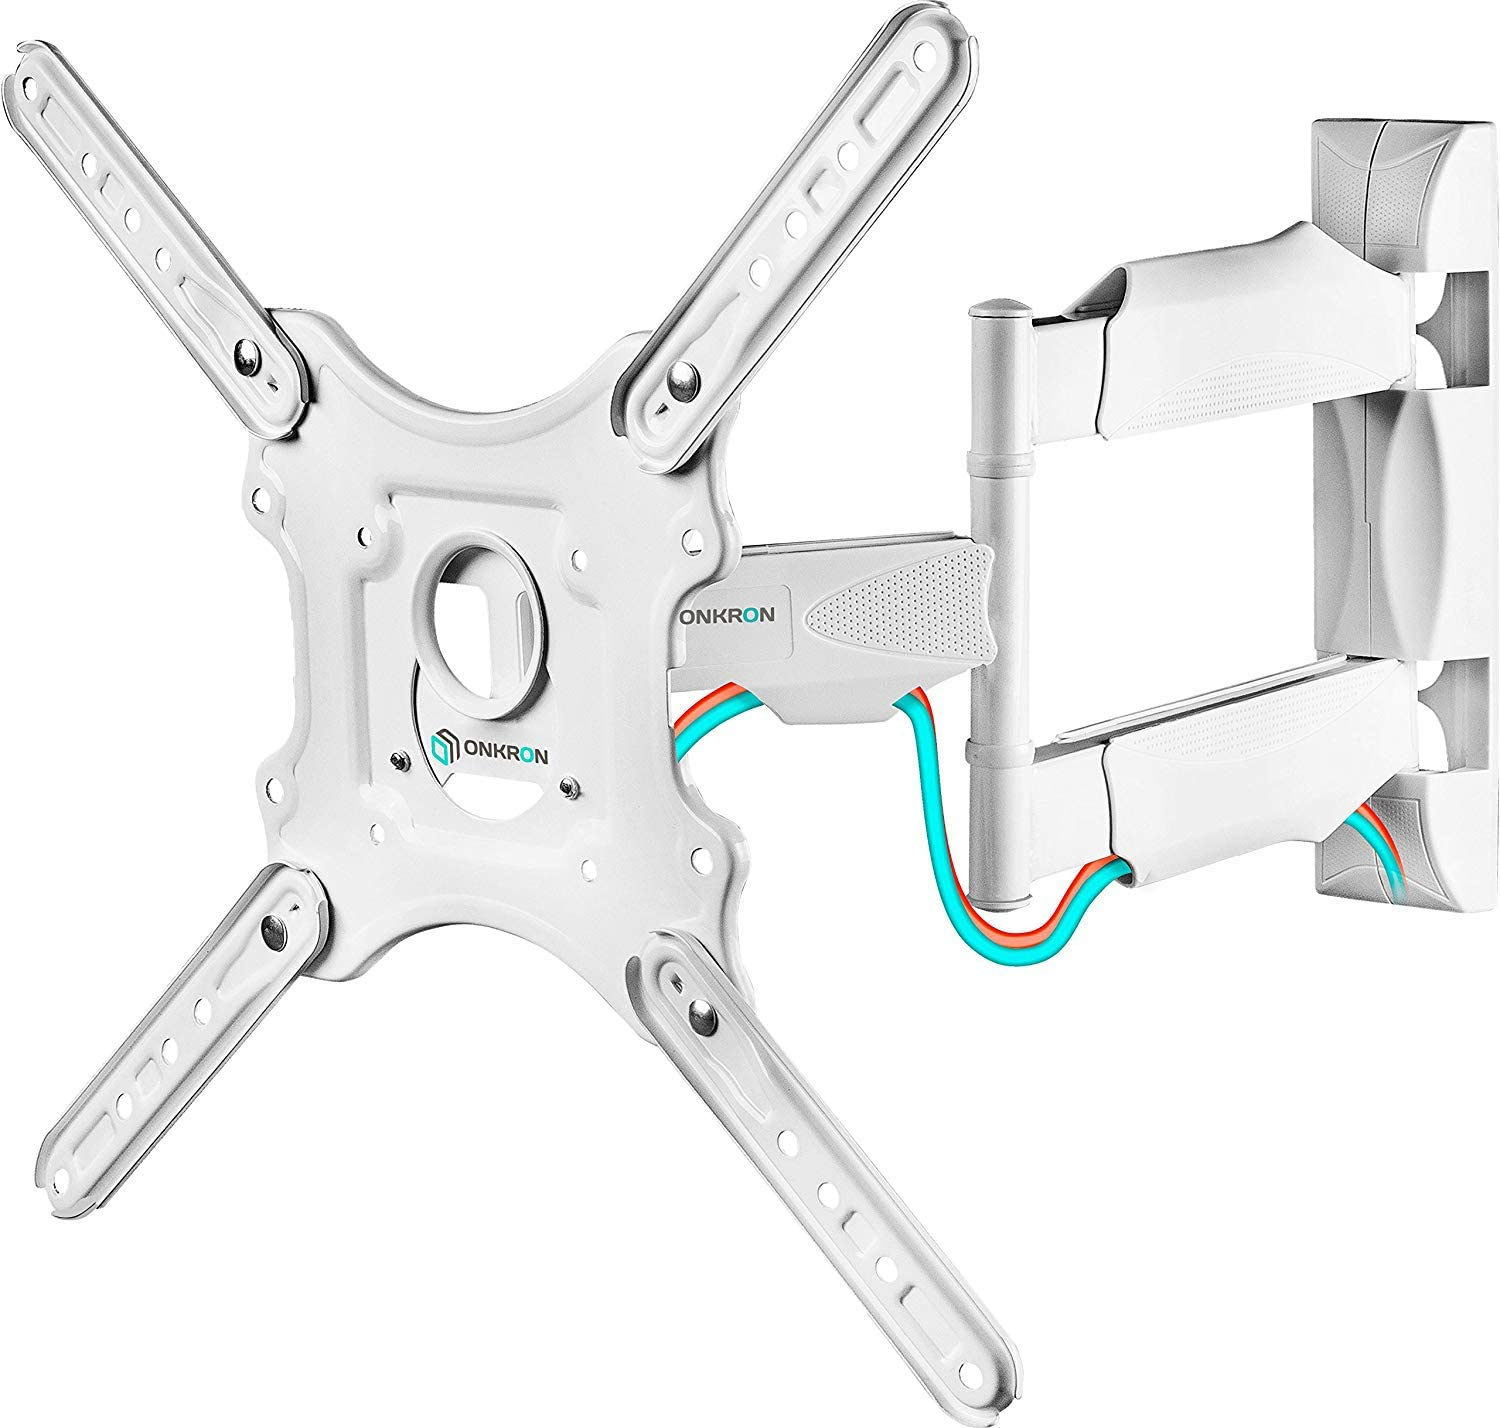 """ONKRON TV Wall Mount Full Motion Arm Bracket for 32"""" to 55-inch LCD LED Flat Screens up to 77 lbs Extendable Adjustable Swivel VESA up to 400 x 400 mm M4 White"""